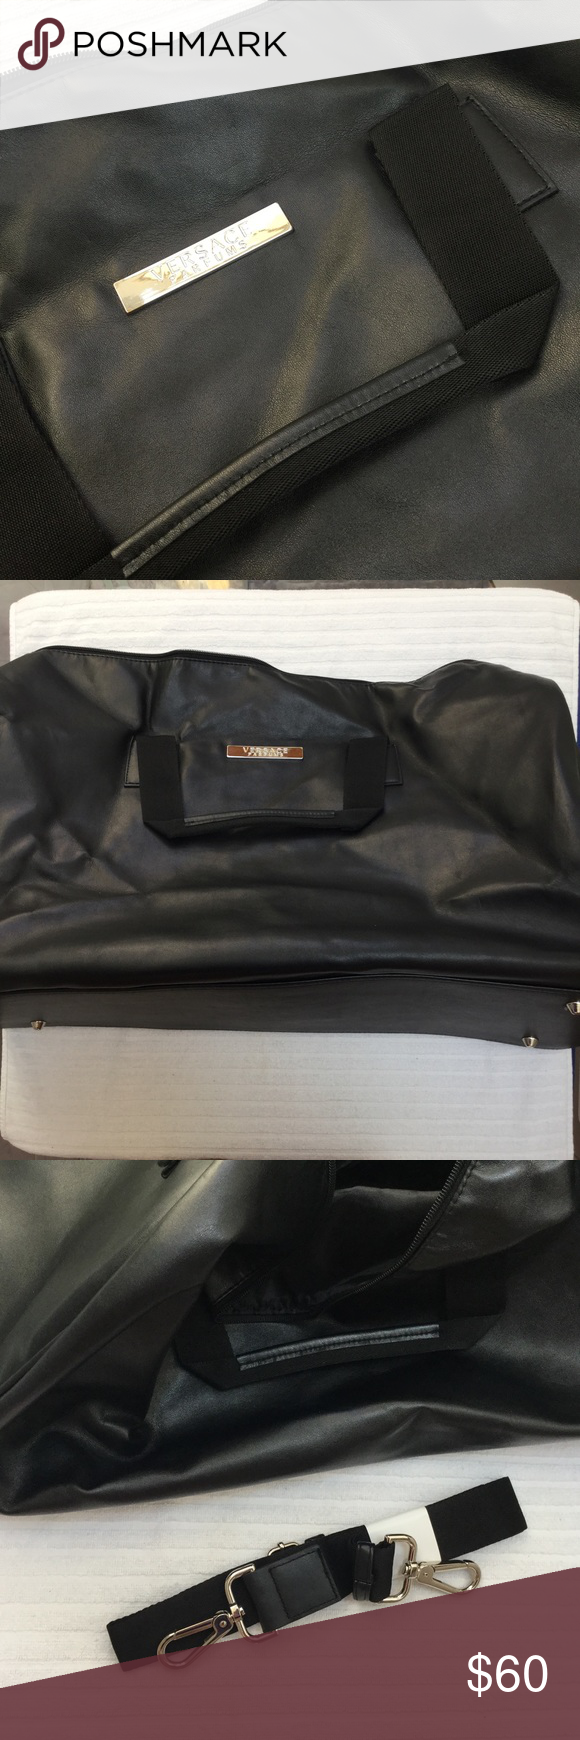 NWOT Versace Leather Duffle Absolutely beautiful weekender bag from Versace  Parfums, made of genuine leather. Never used before, comes with detachable  ... 815c59ab33